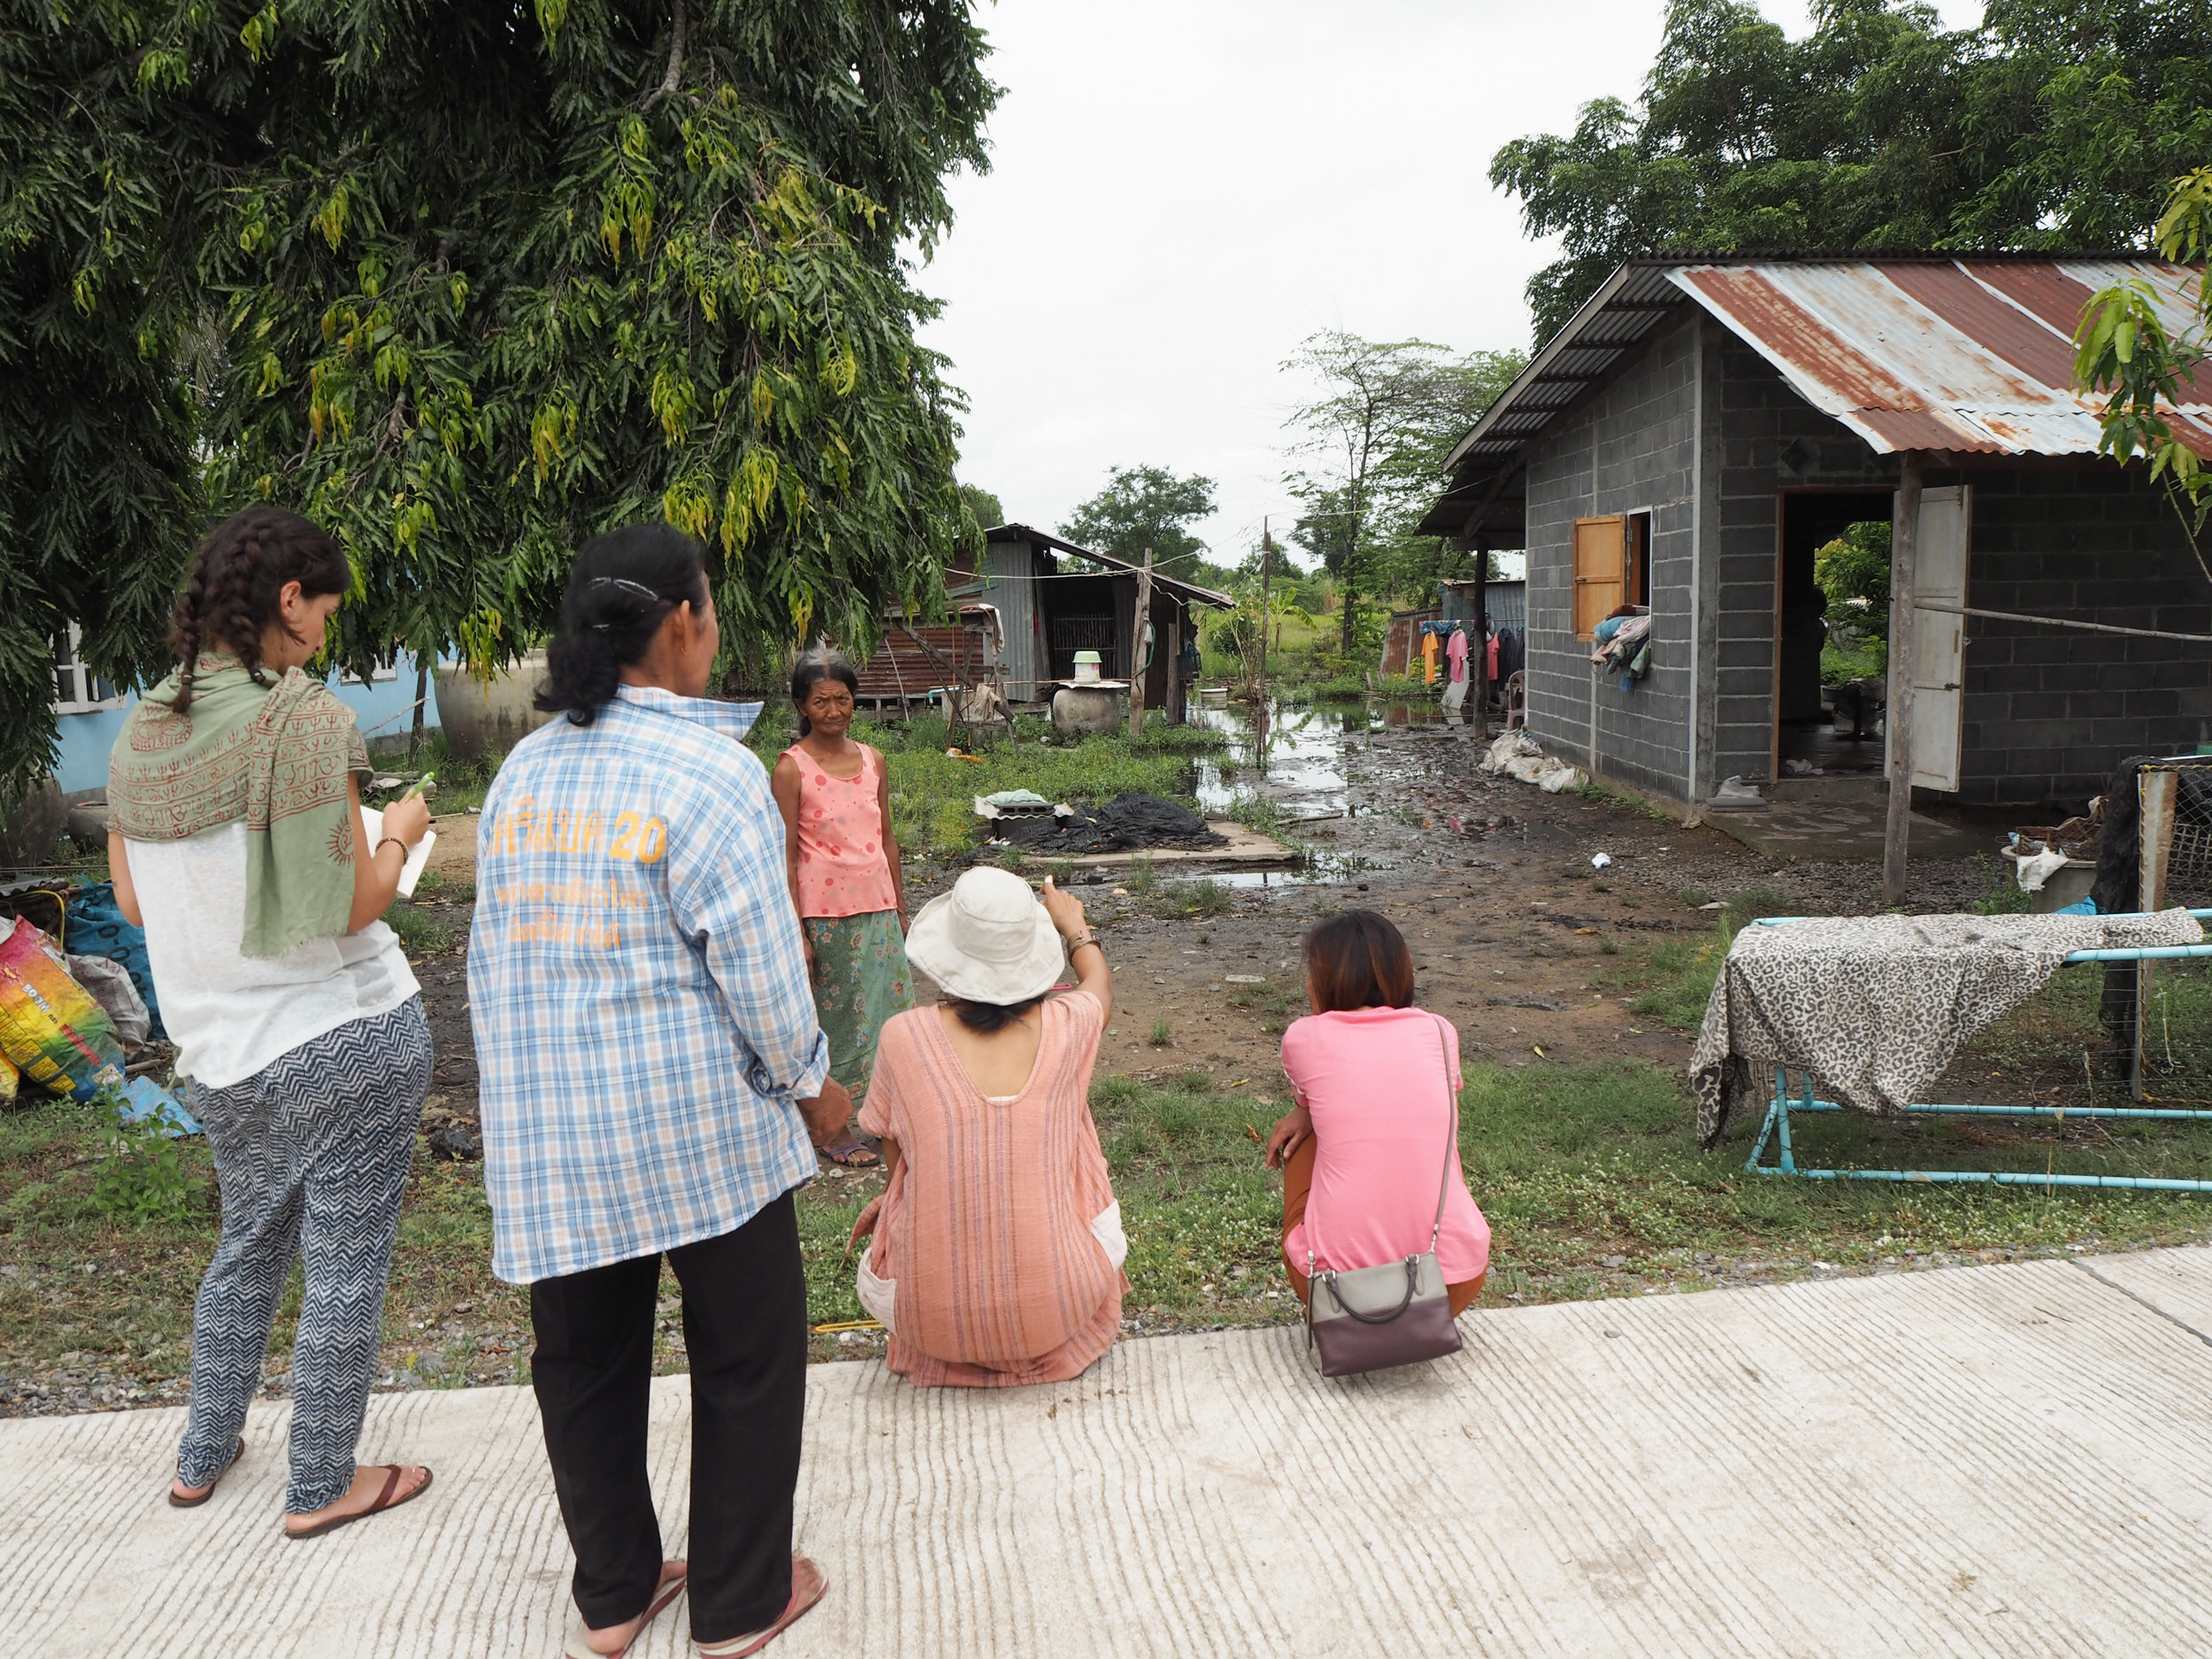 Leave No One Behind: Community-driven urban development in Thailand - Visiting elderly people and people with disabilities